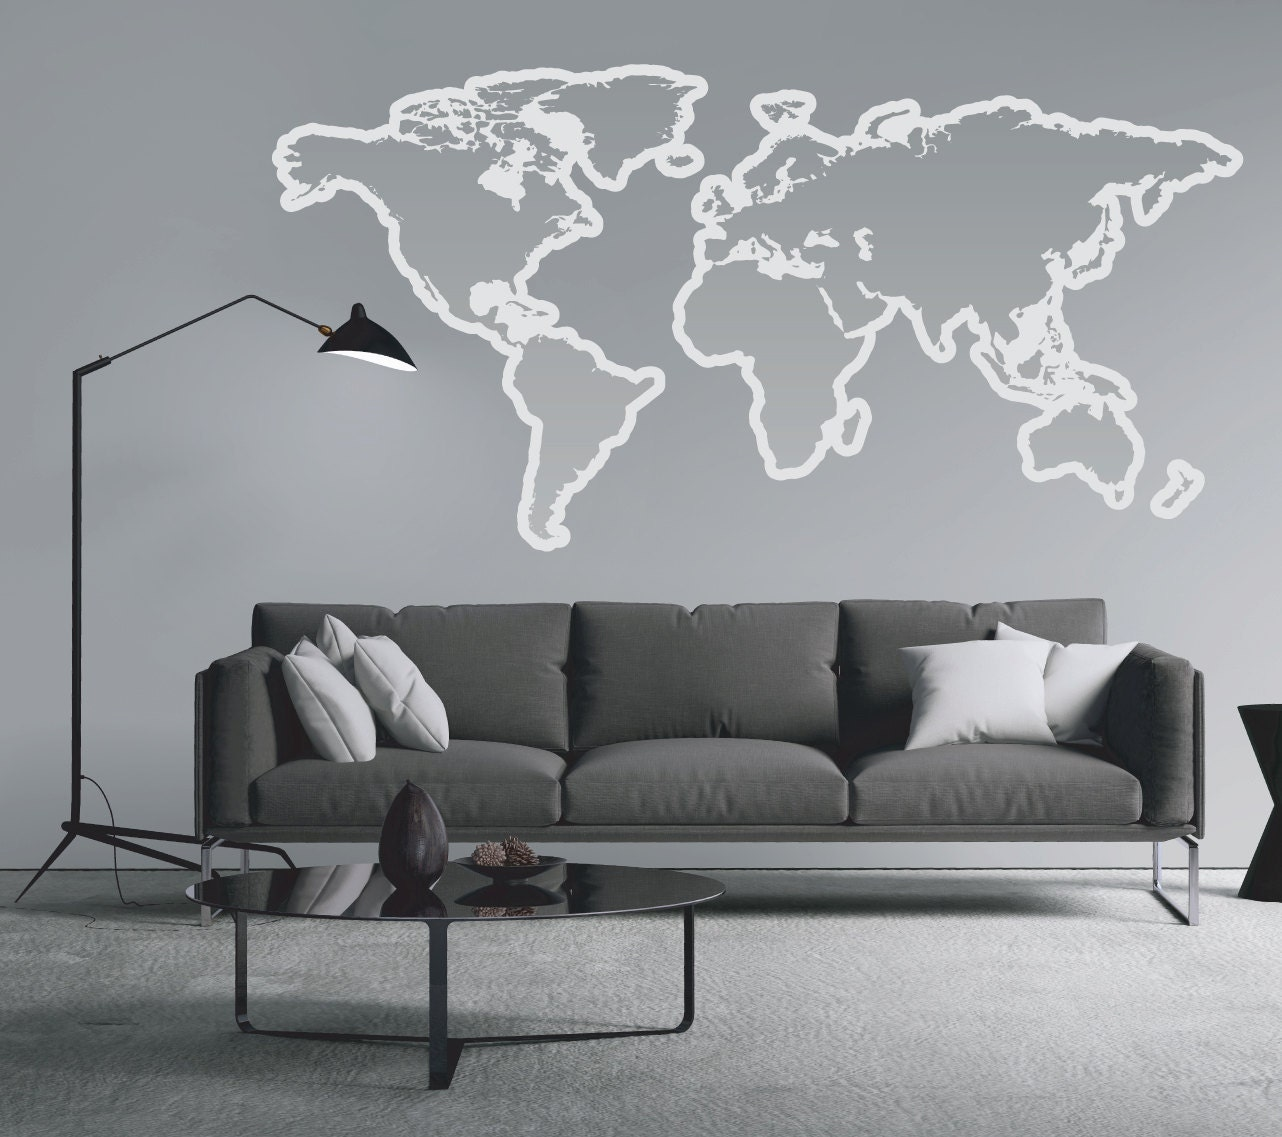 World map outlines wall decal vinyl graphic wall sticker world map outlines wall decal vinyl graphic wall sticker gumiabroncs Image collections